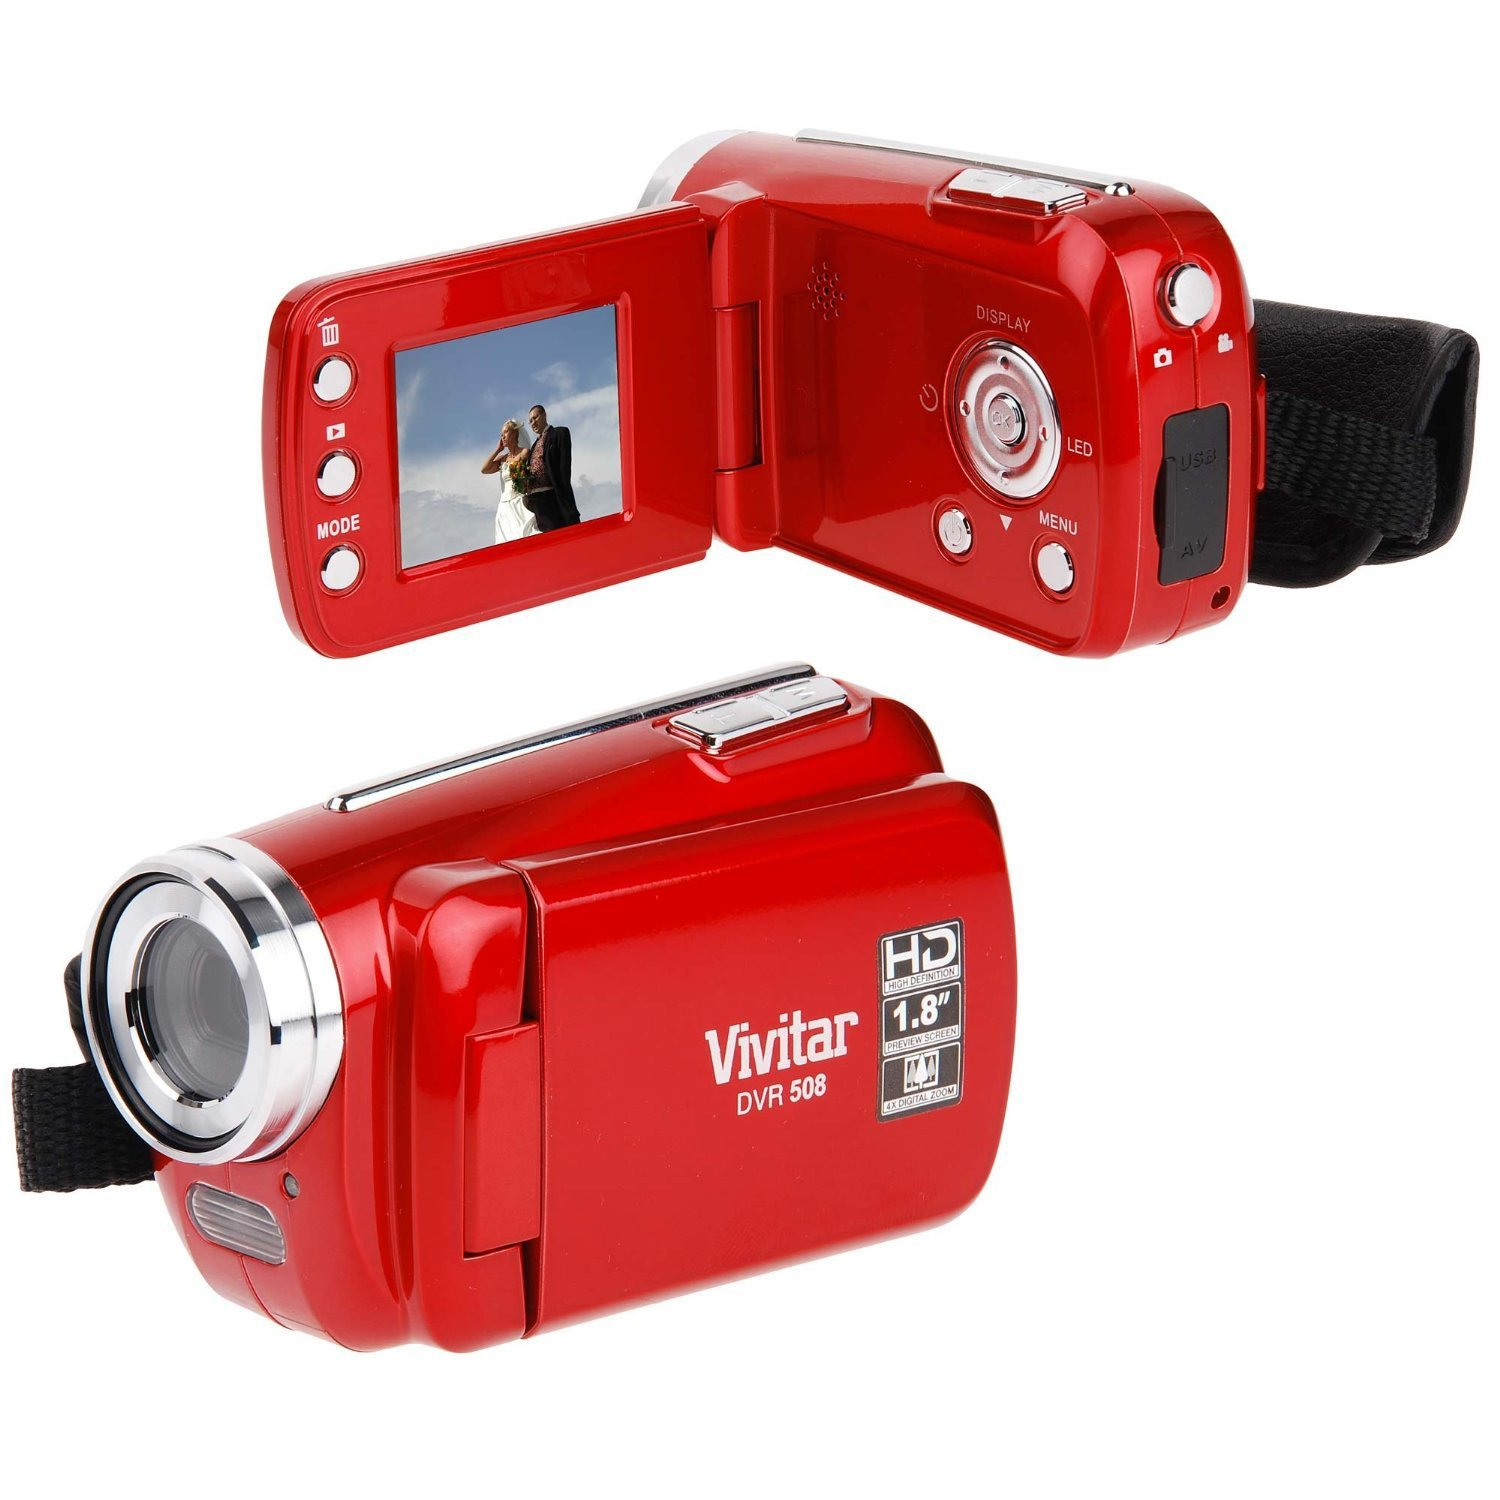 Vivitar DVR508 Digital Video Camera Camcorder Strawberry Red - DVR508-STRAW